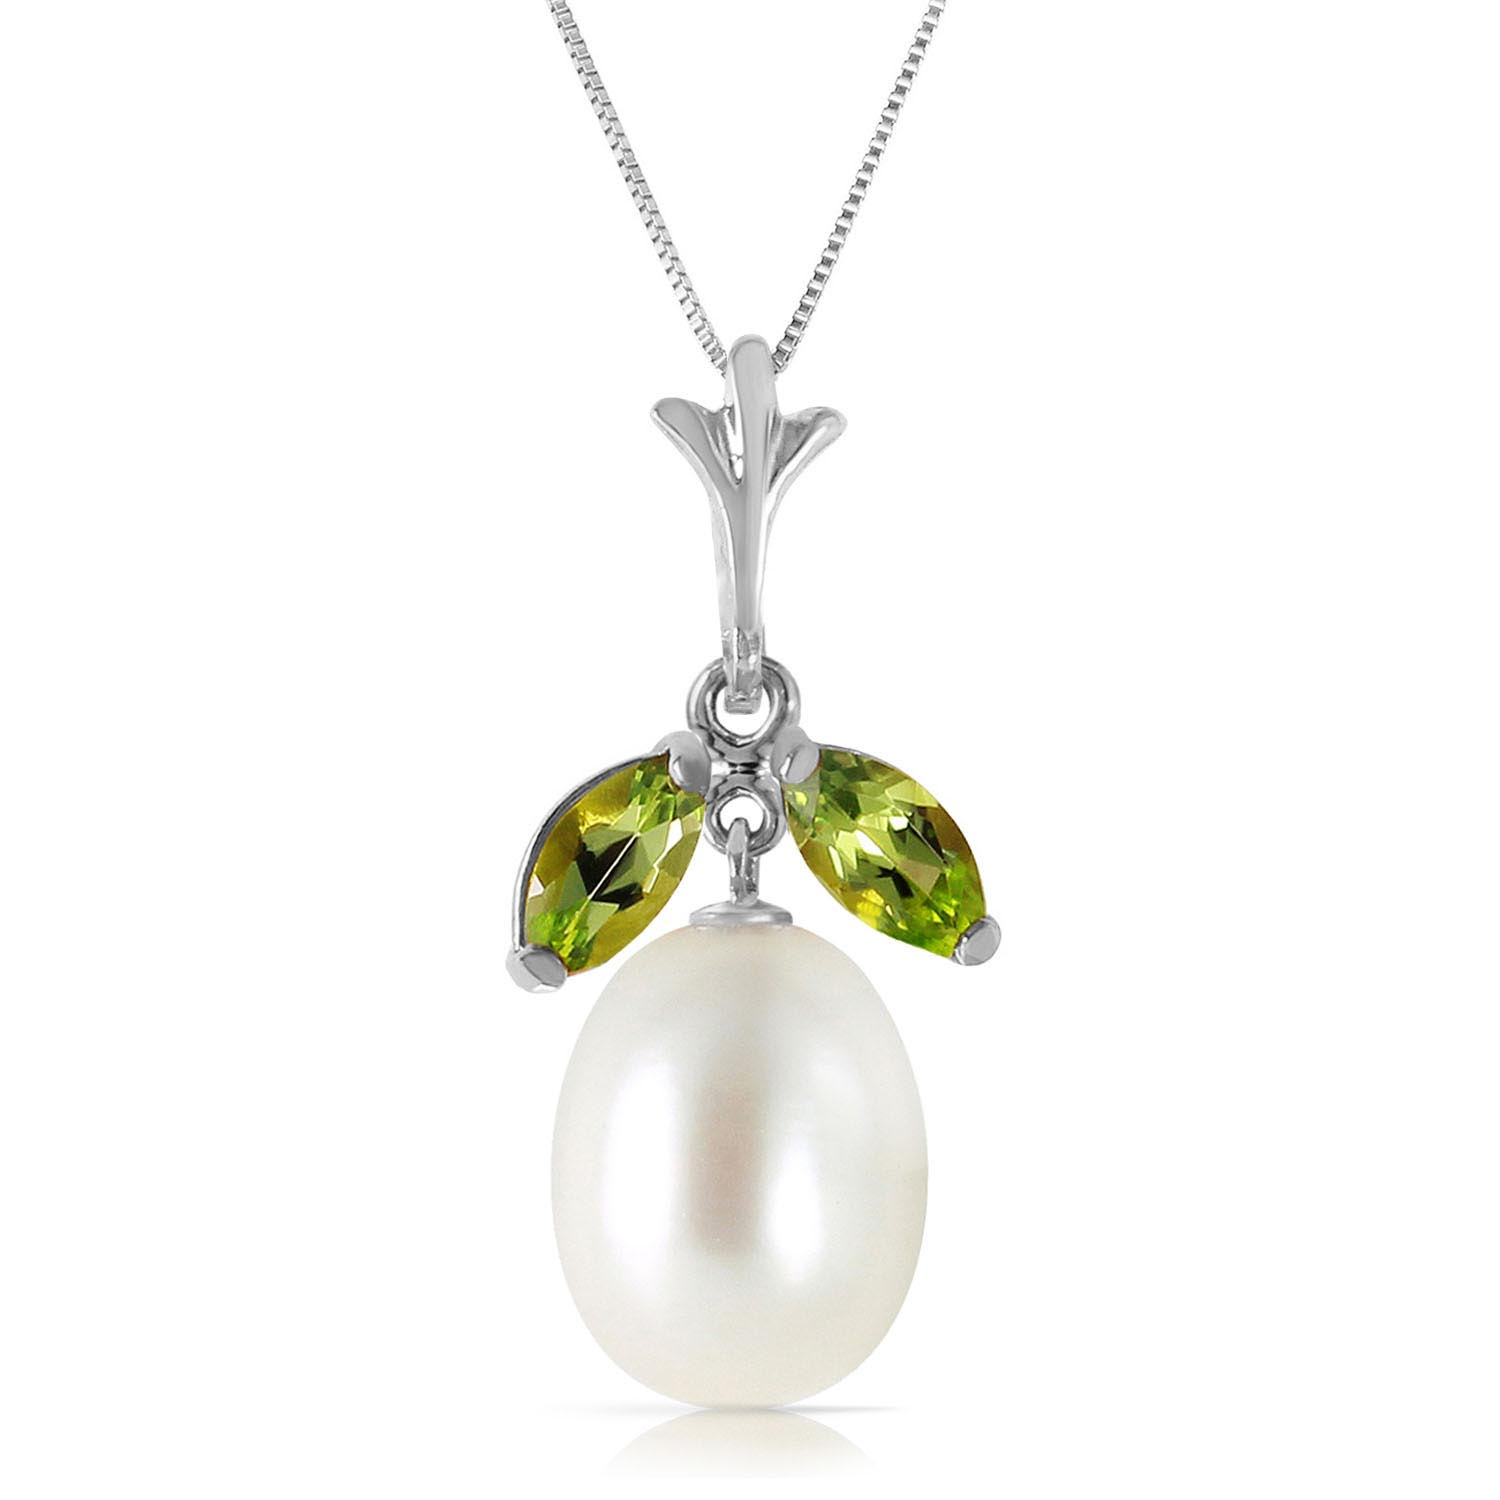 Pearl and Peridot Pendant Necklace 4.5ctw in 9ct White Gold 3111W